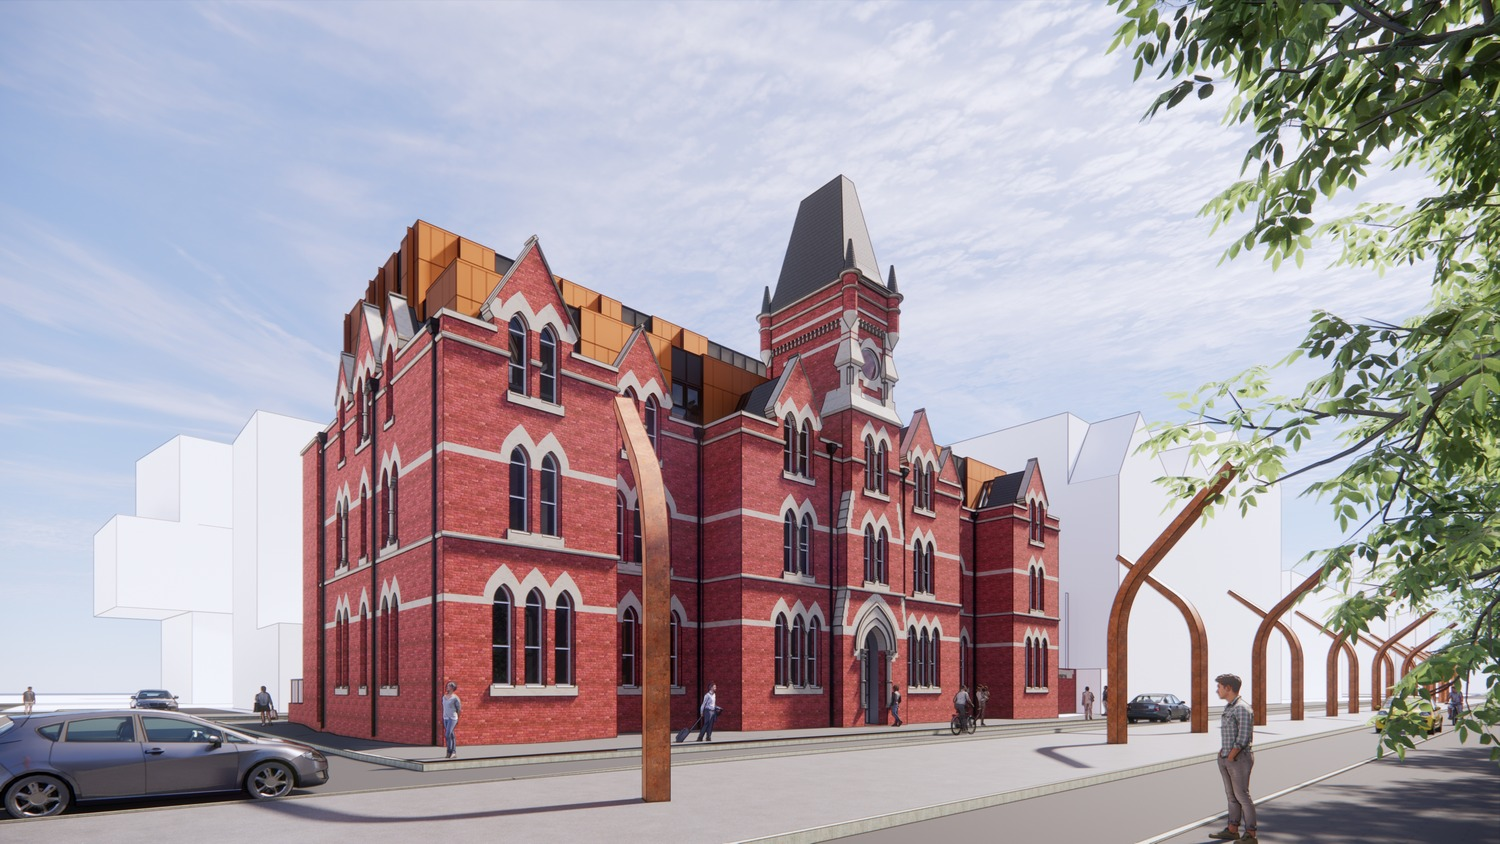 Plans submitted for Ancoats Dispensary redevelopment